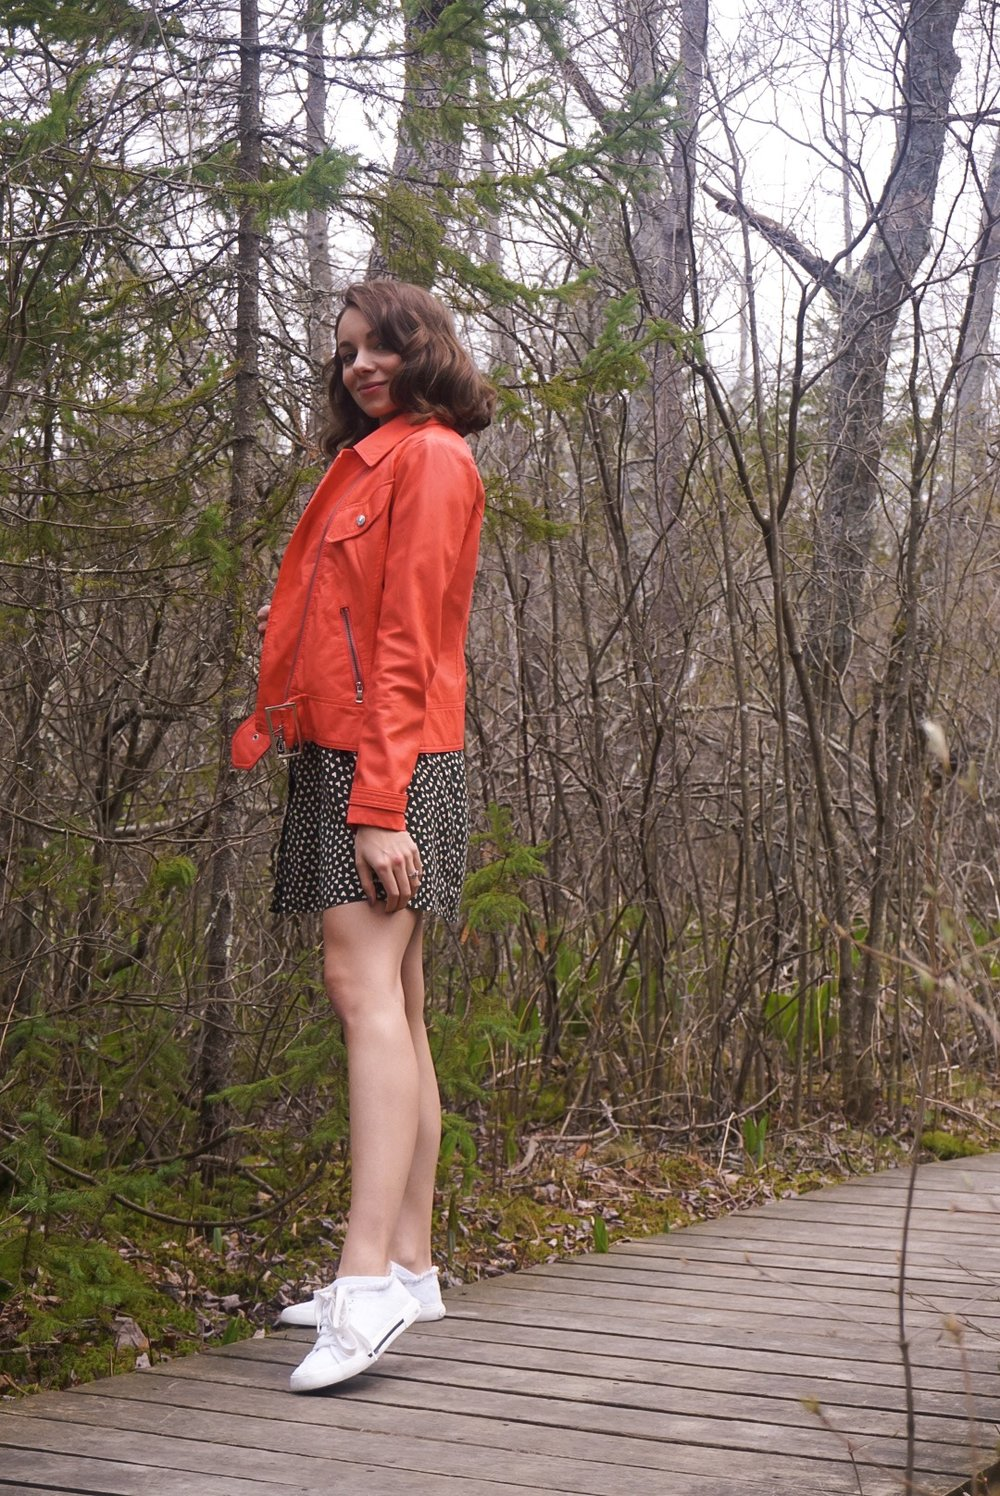 Fashion blogger having a photo shoot in the nature, wearing a dark green short dress, orange faux-leather jacket, and white sneaker.